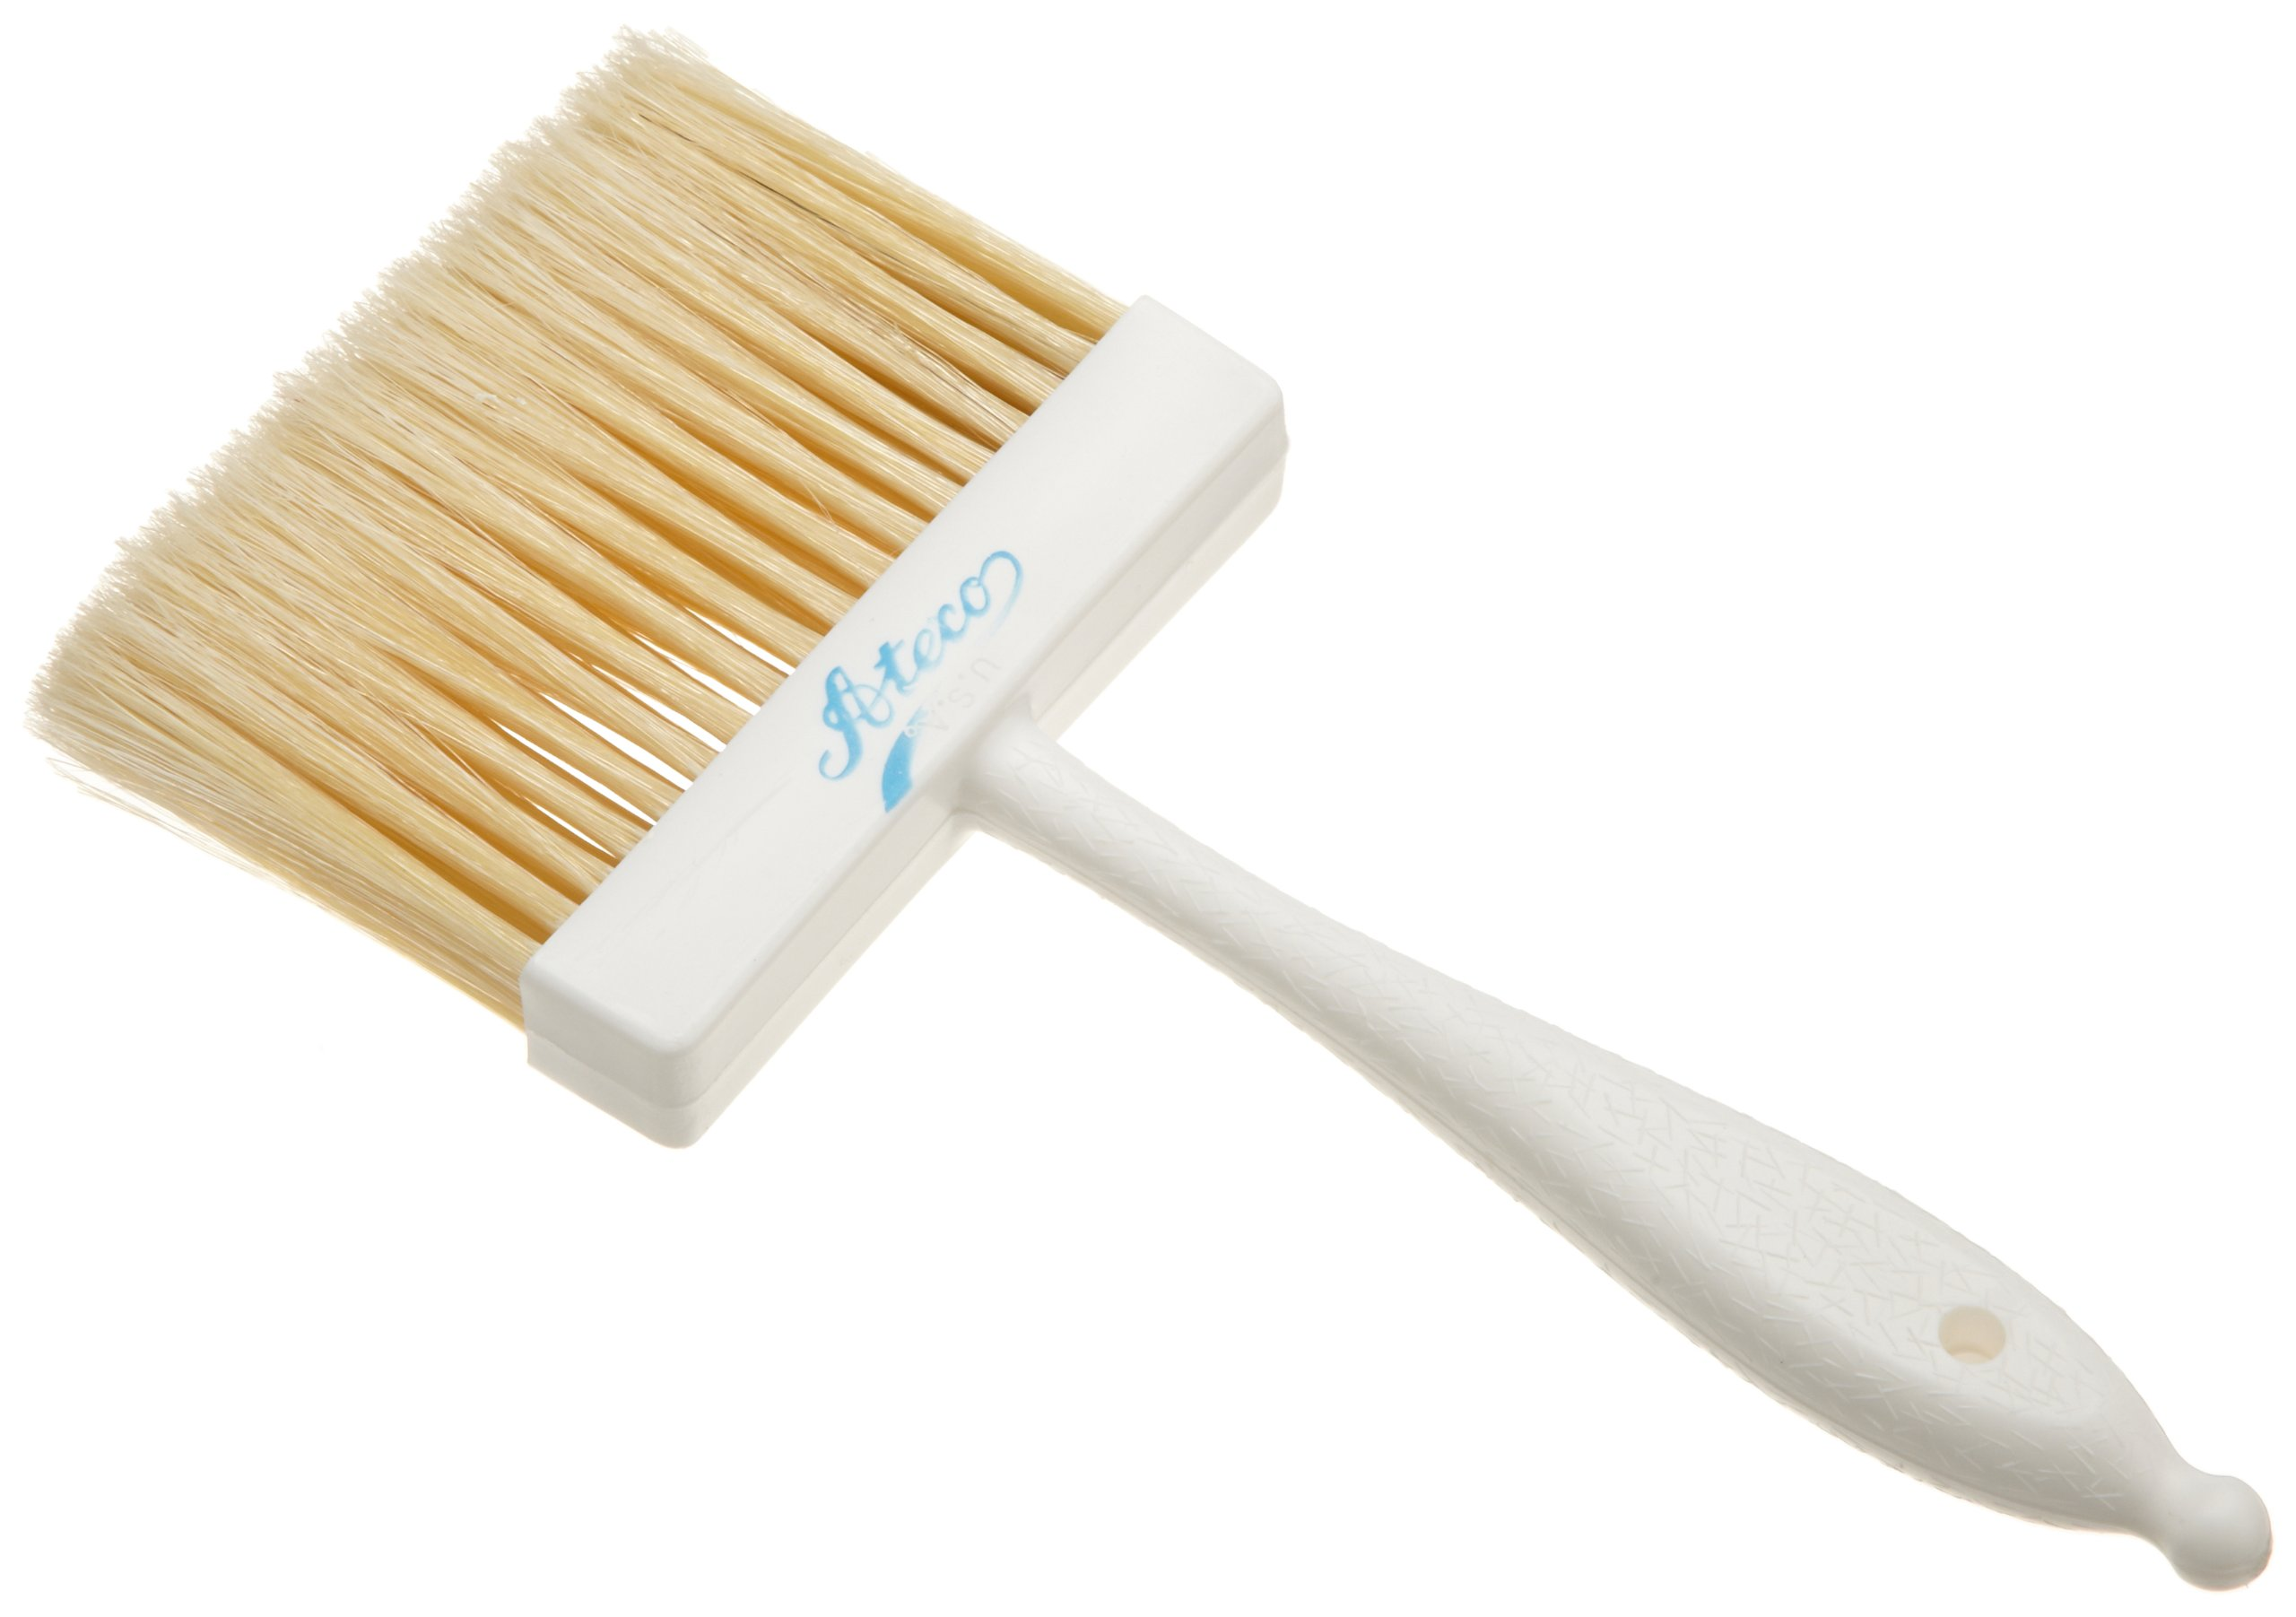 Ateco 1674 Pastry Brush, 4-Inch Wide Head with Natural White Boar Bristles & Molded Plastic Handle